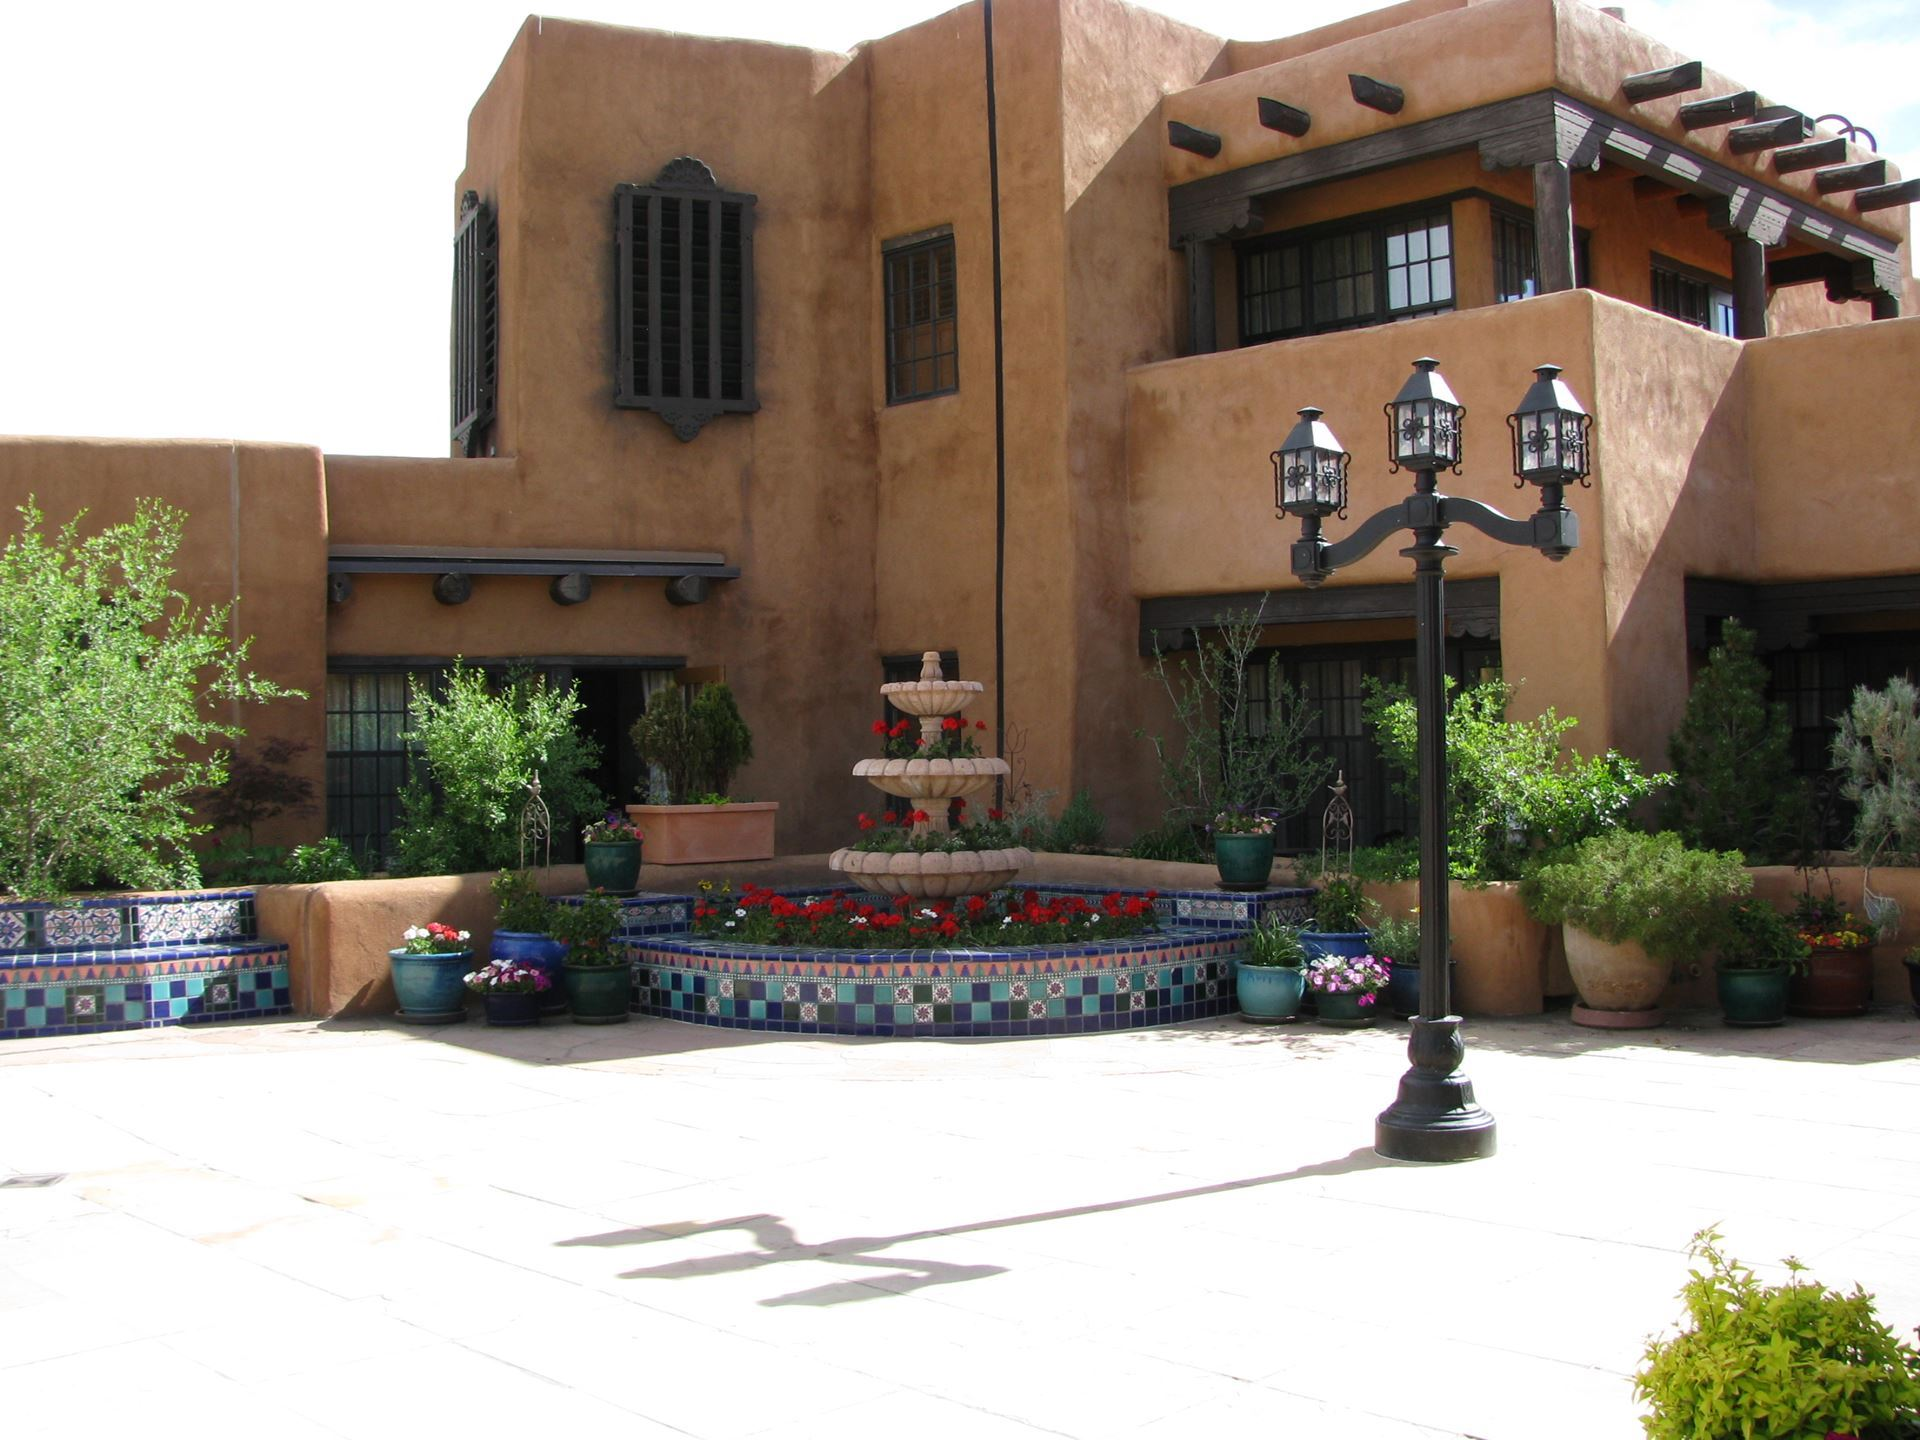 new mexico association of museums